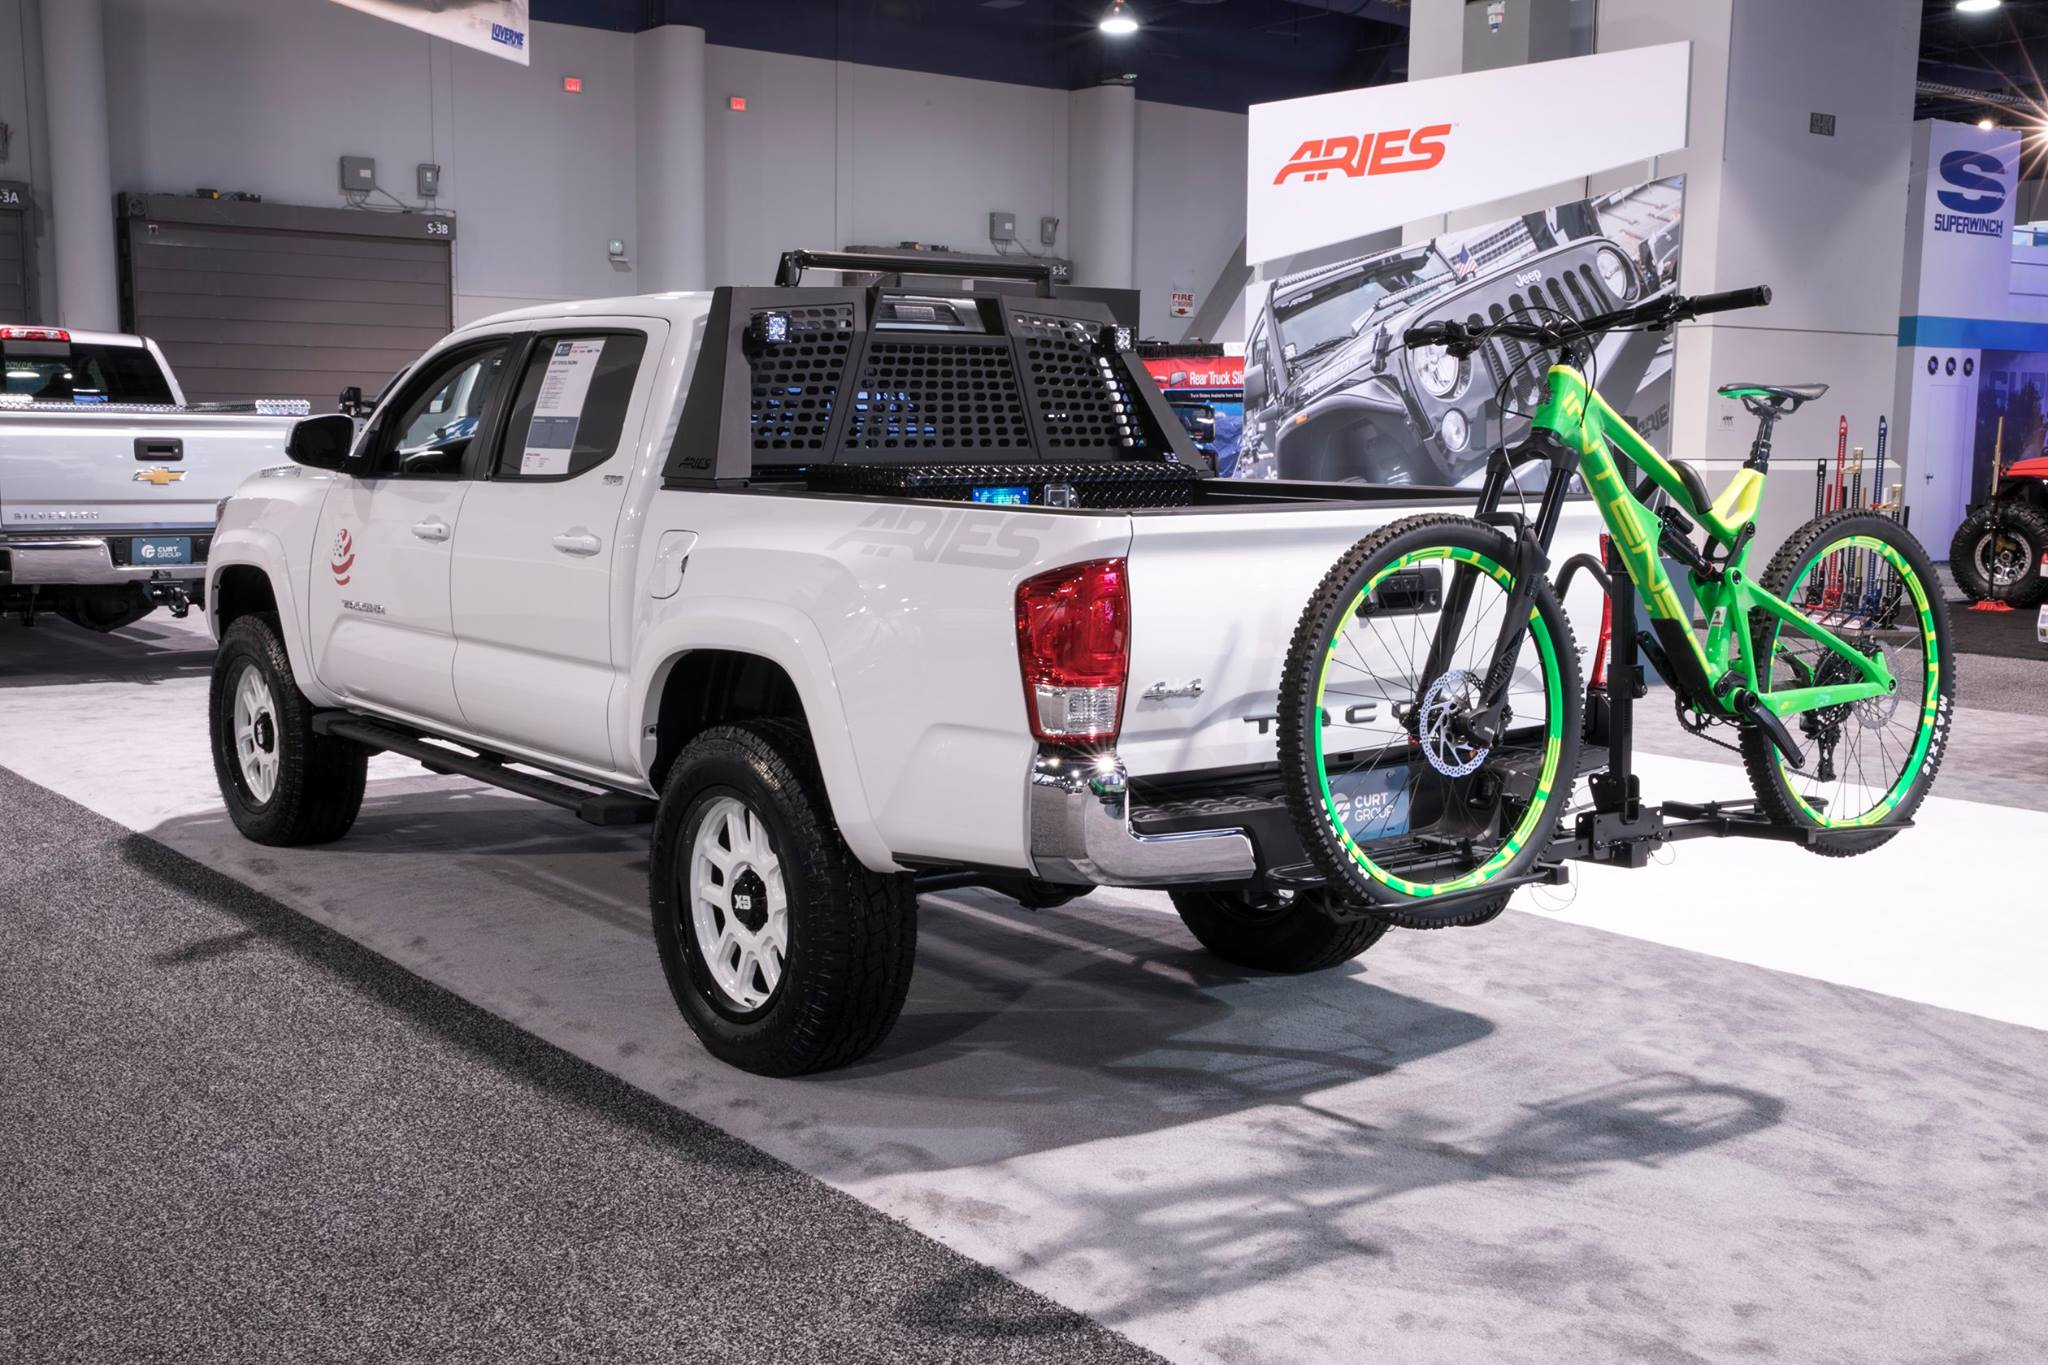 SEMA 2017 TEAM ARIES TOYOTA TACOMA TROOPSDIRECT HEADACHE RACK